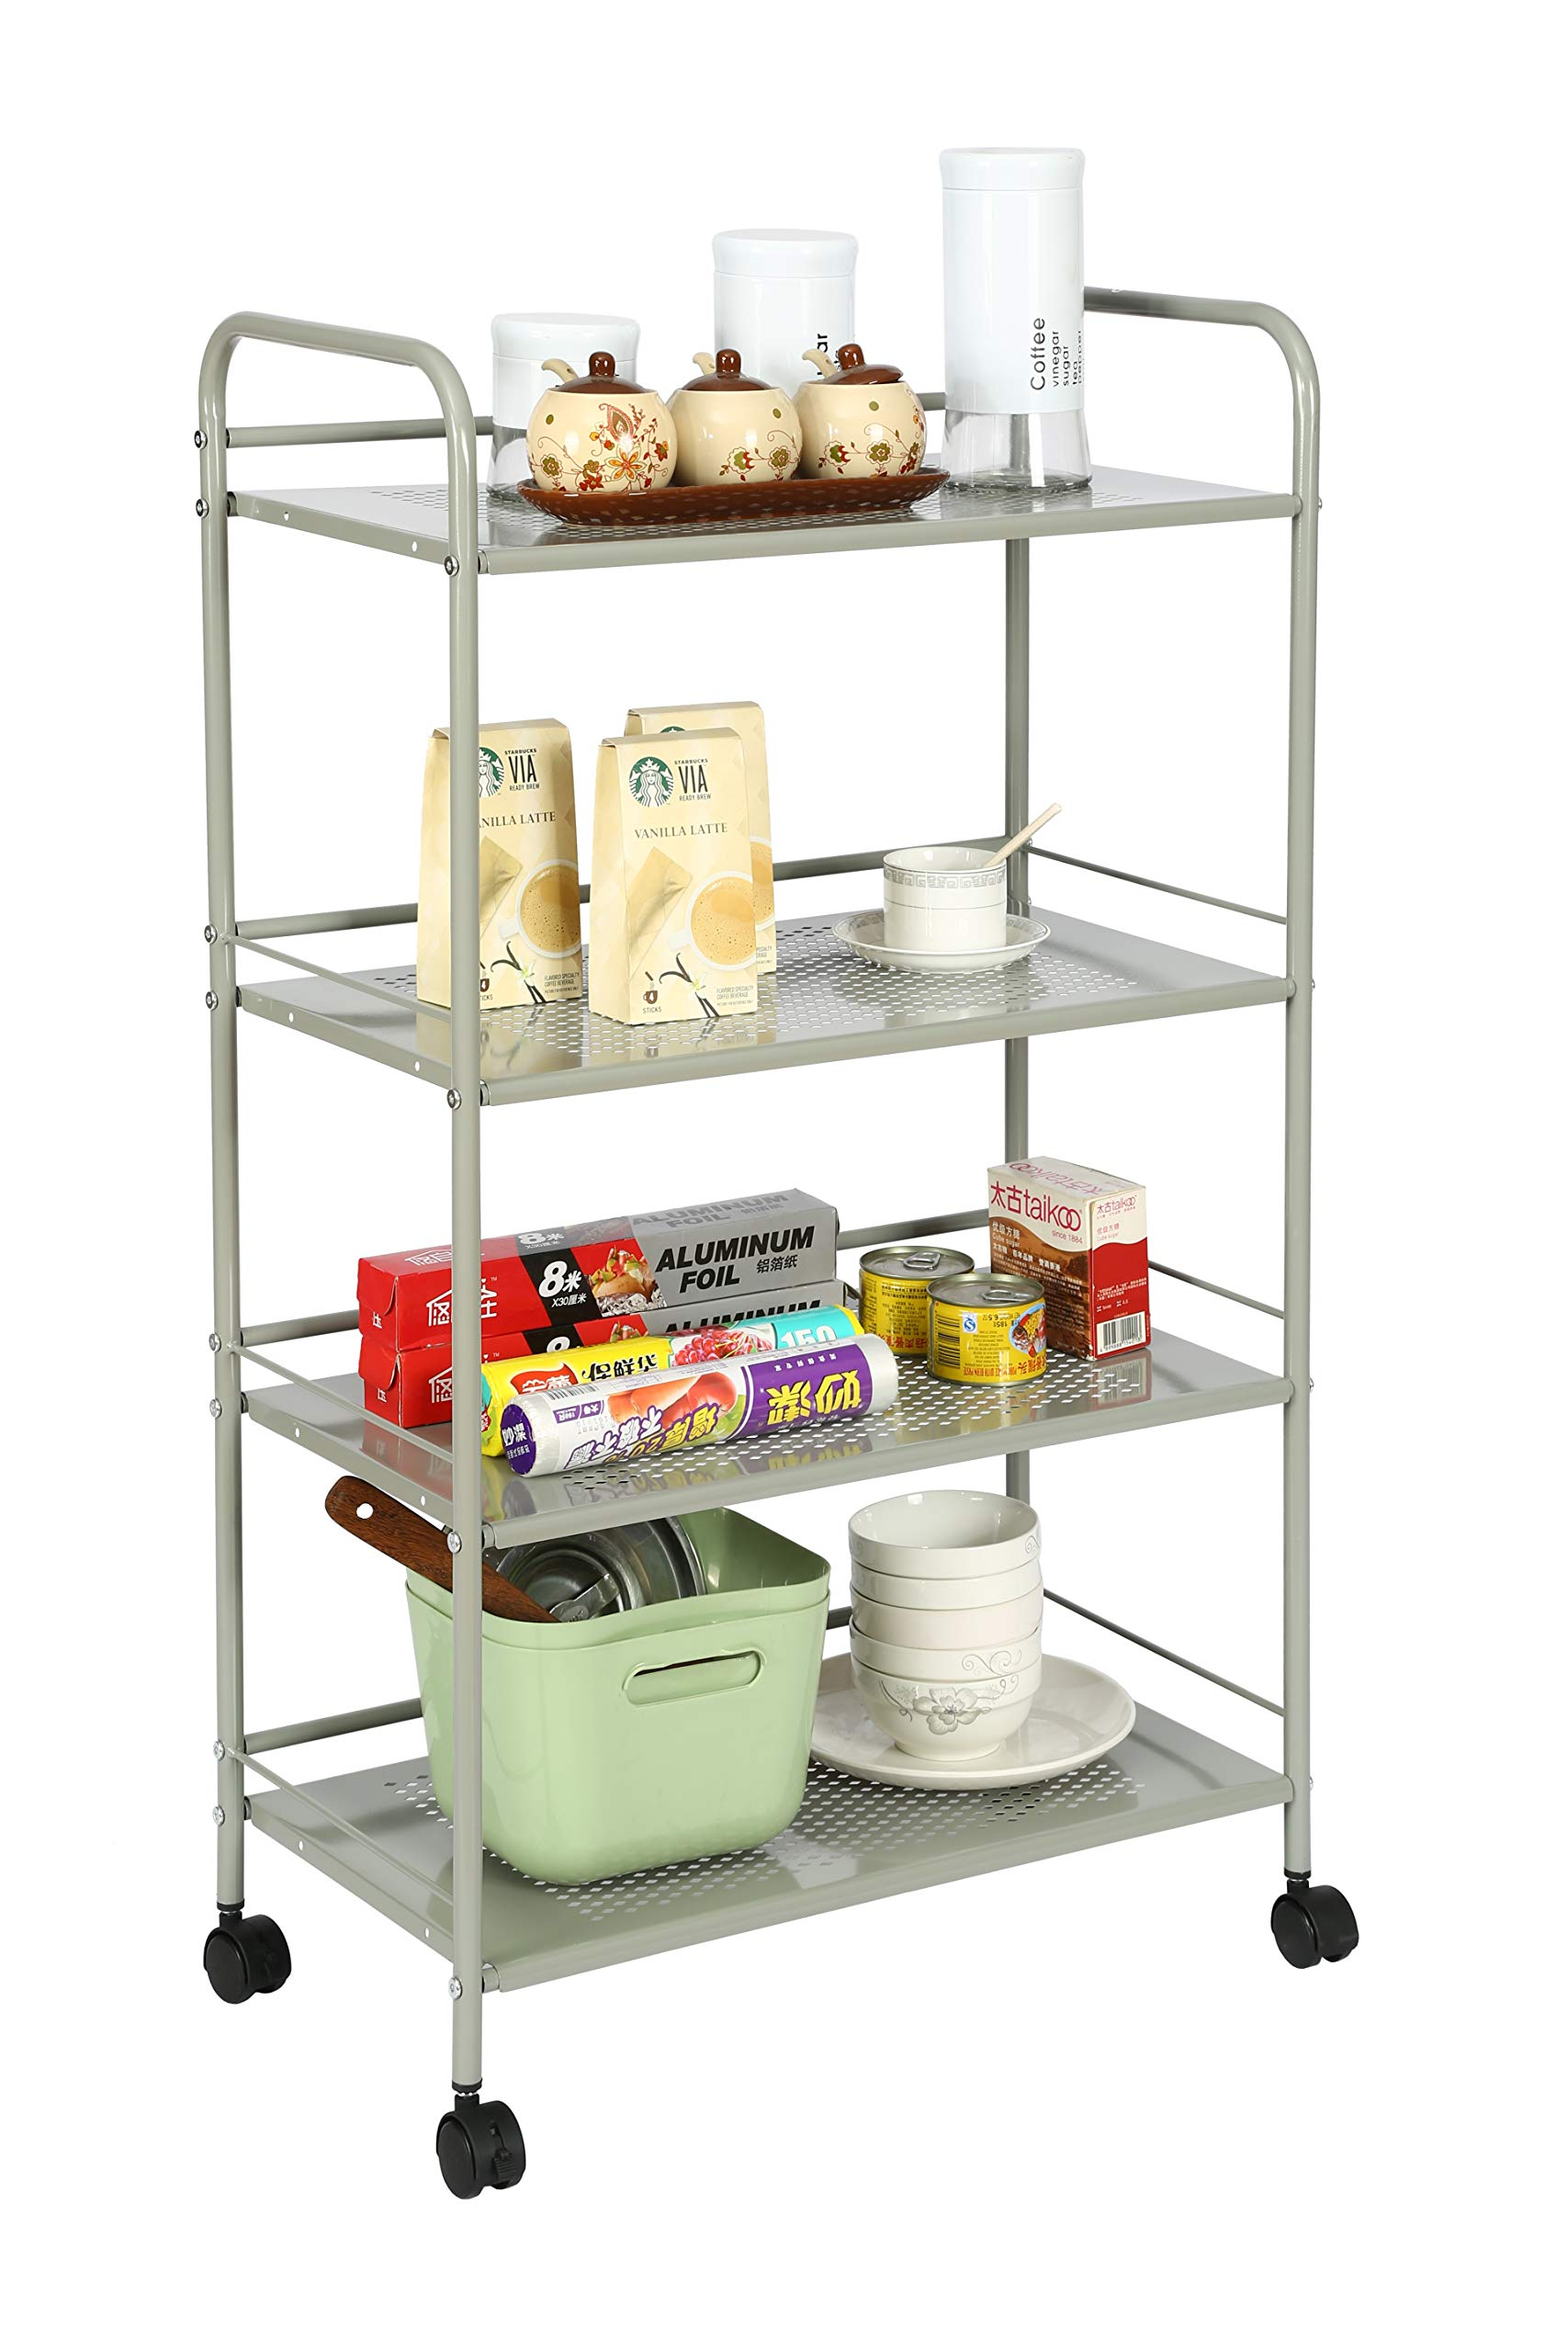 Homebi Kitchen Trolley Rolling Cart Metal Storage Rack Shelving Units for Cooking Utensils and Food Storage with Wheels (4-Tier)